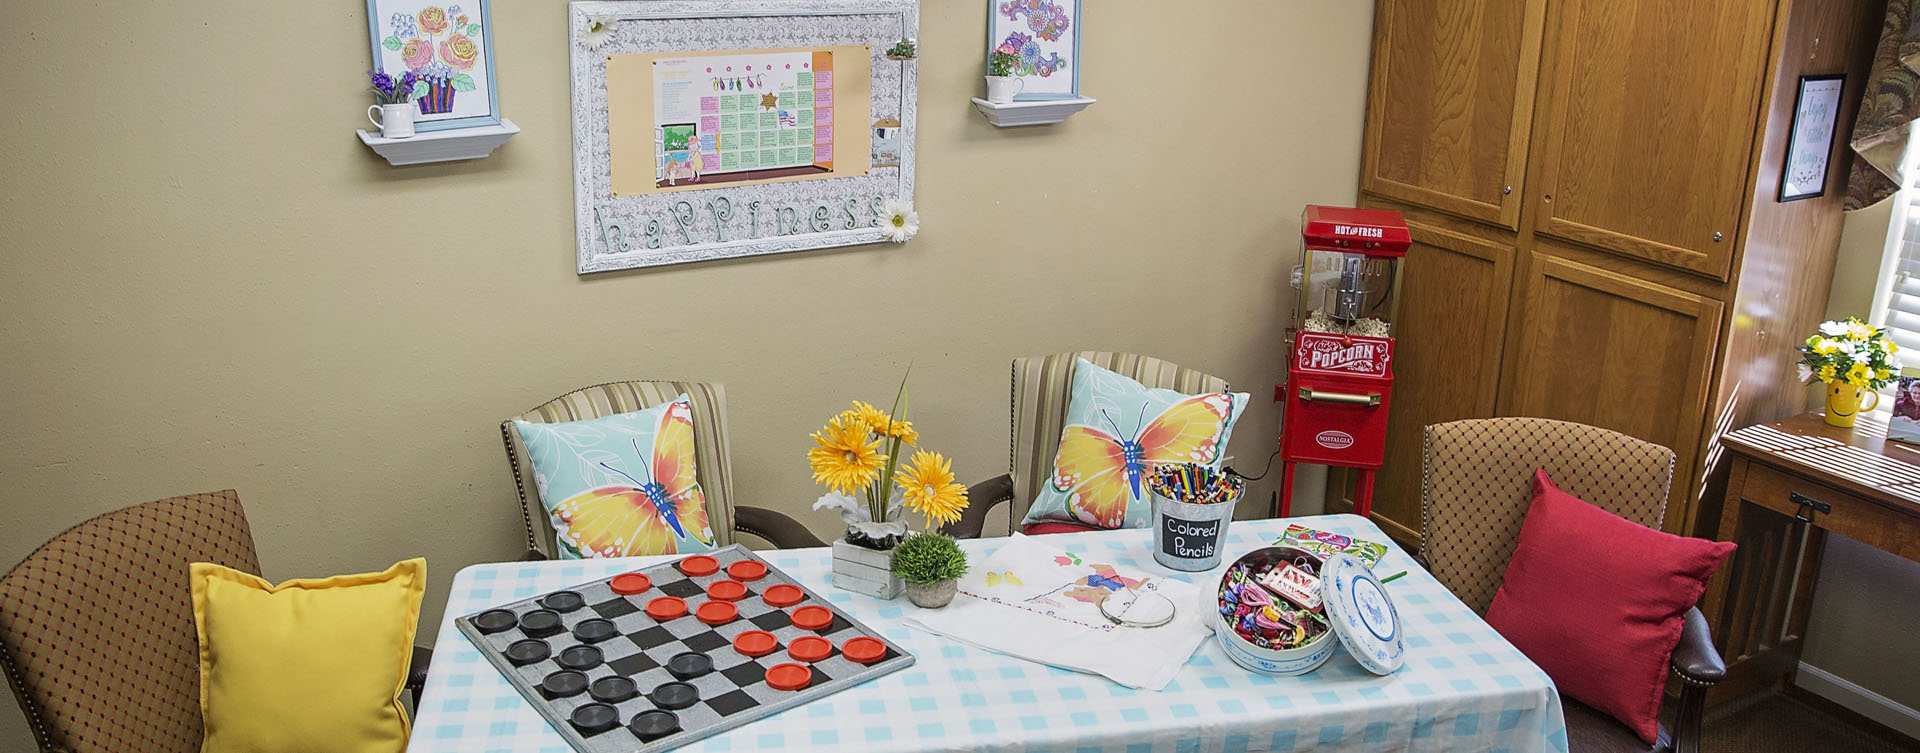 Enjoy a good card game with friends in the activity room at Bickford of Grand Island